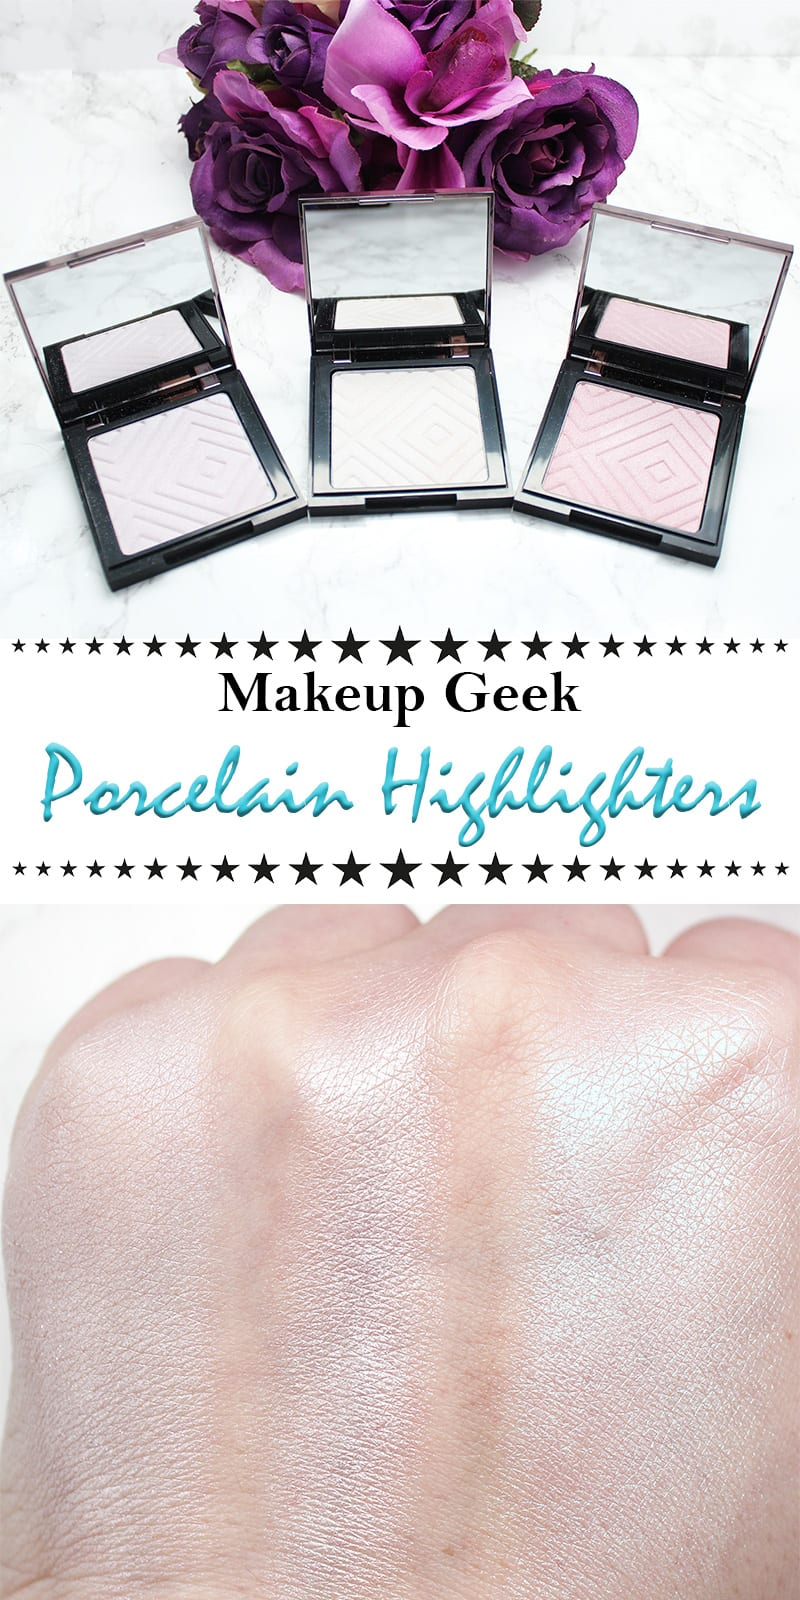 Makeup Geek Porcelain Highlighters Review Swatches Looks